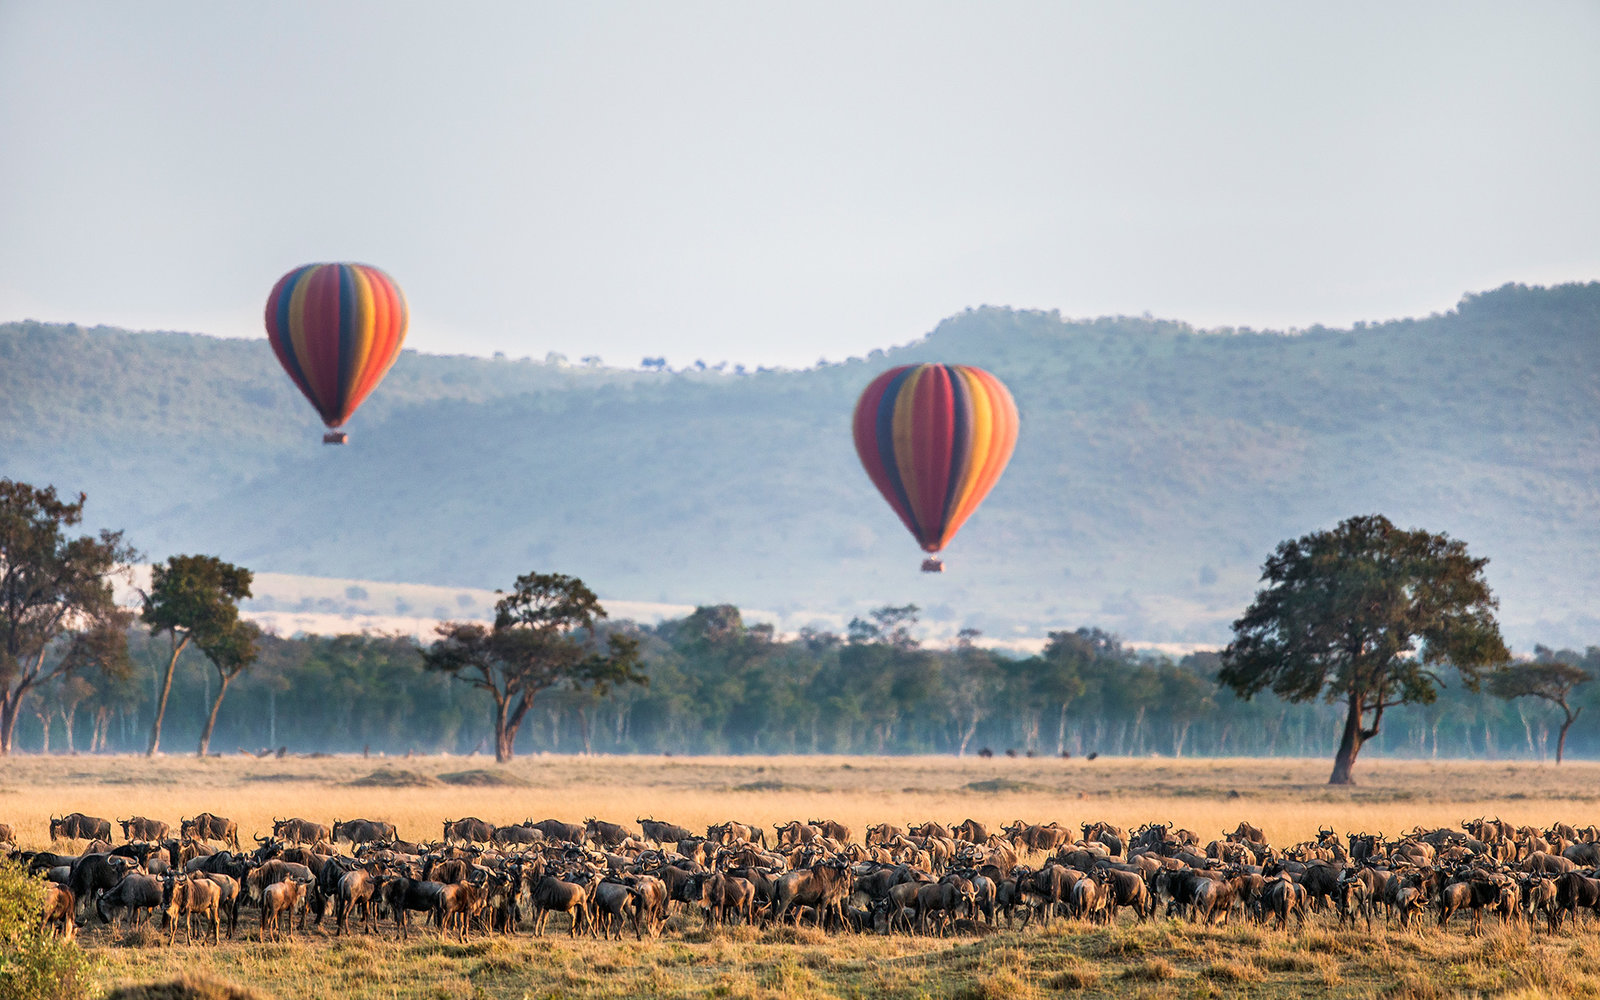 Hot Air Balloon, Masai Mara National Reserve - travel destinations, africa destinations, travel tips, travel ideas, travel hacks, travel guide, road trip, adventure travel, bucket list, south africa